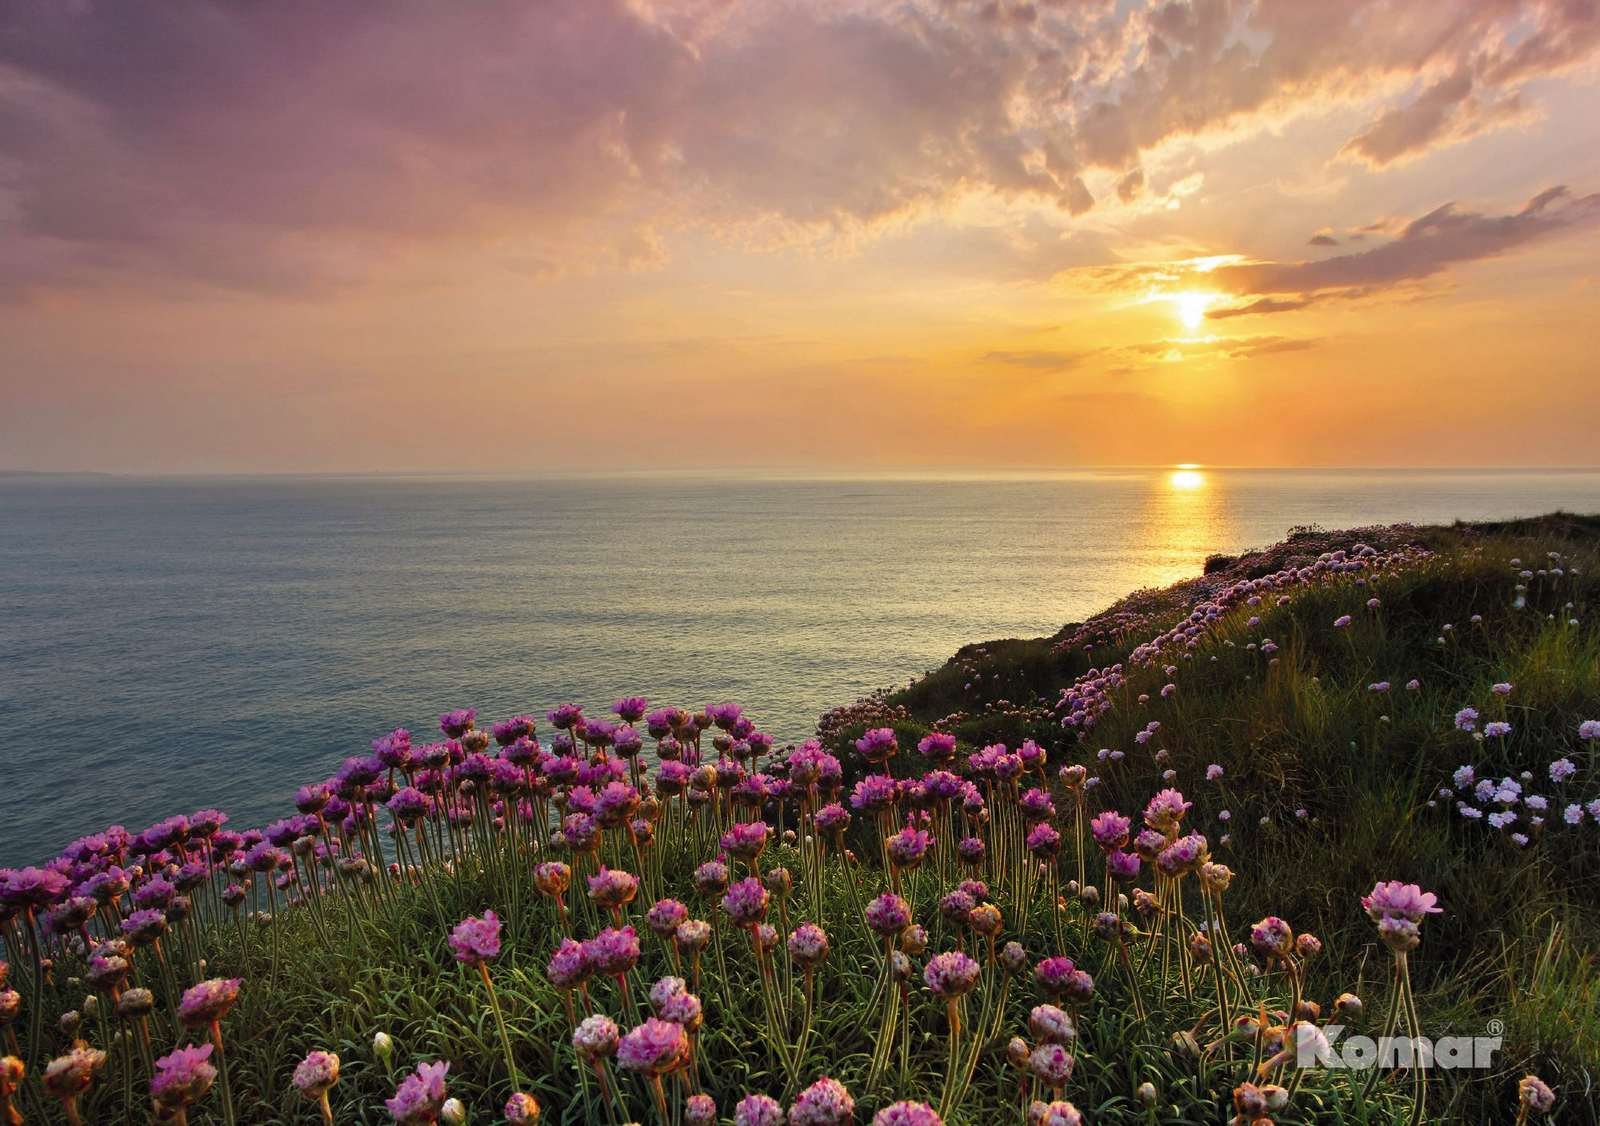 fototapete lands end 368x254 sonnenuntergang klippen rosa violette blumen bl ten ebay. Black Bedroom Furniture Sets. Home Design Ideas